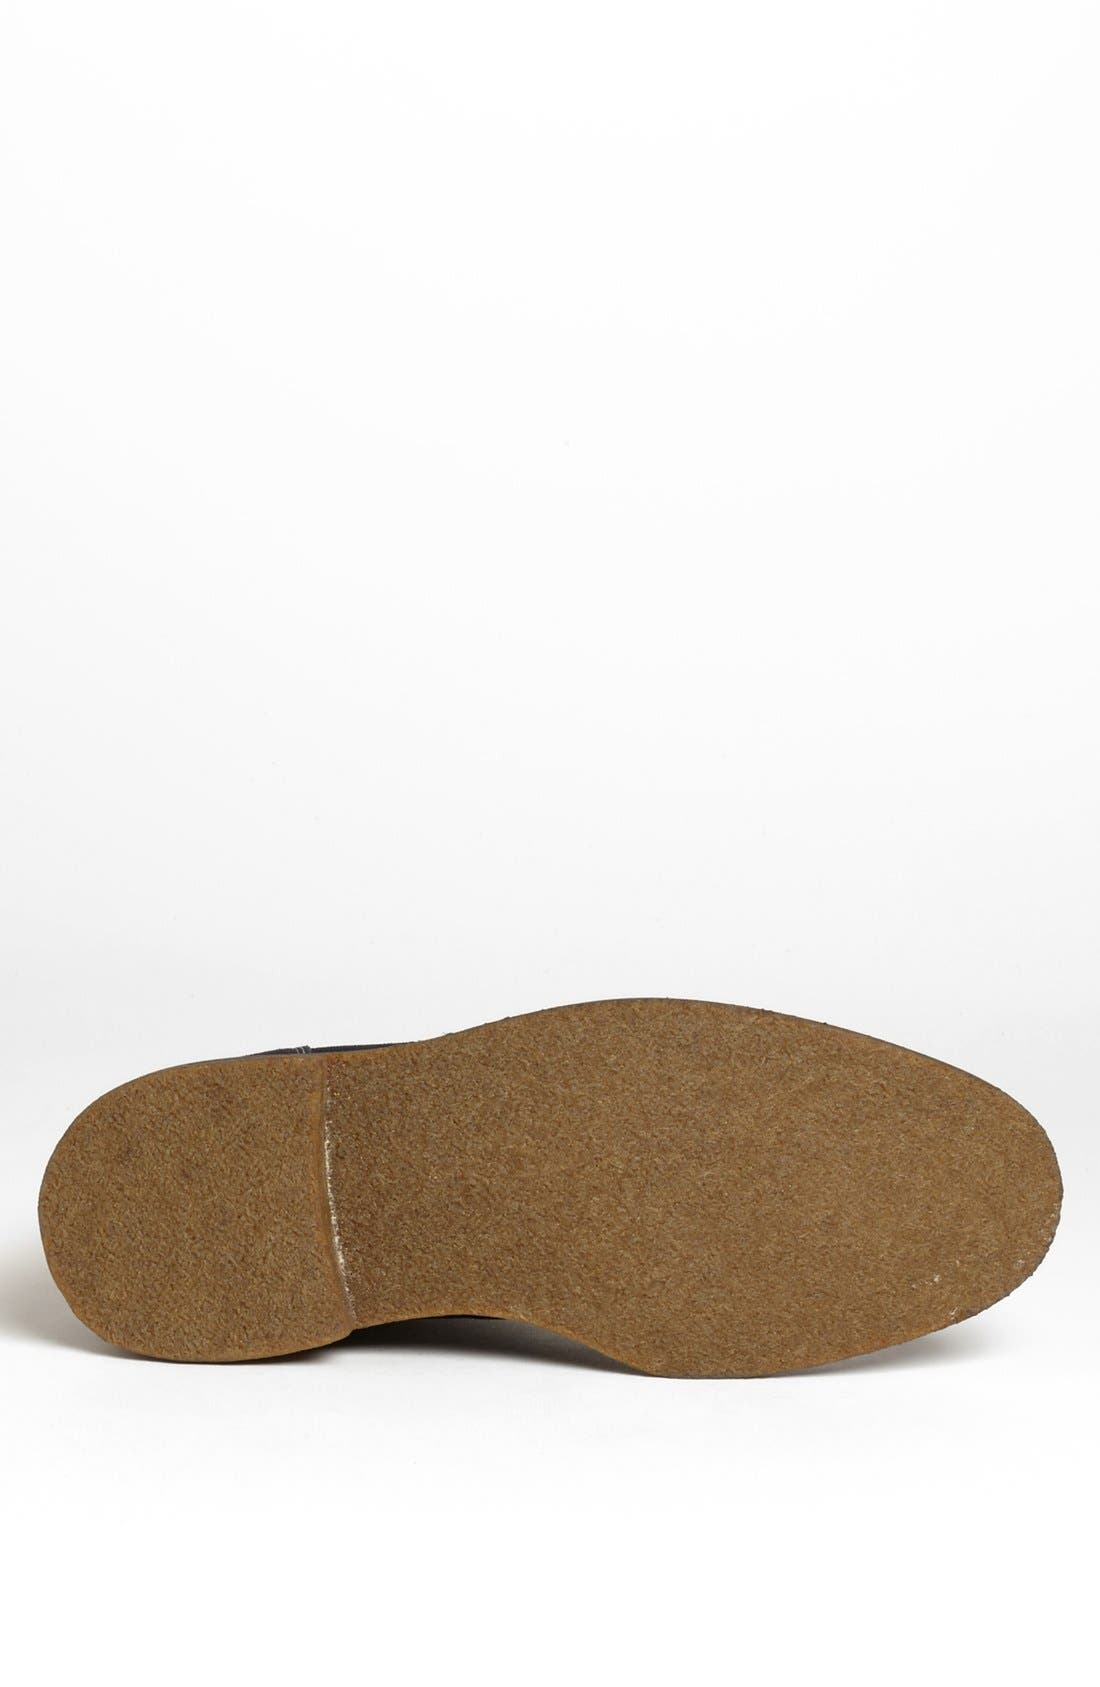 'Copeland' Suede Chukka Boot,                             Alternate thumbnail 35, color,